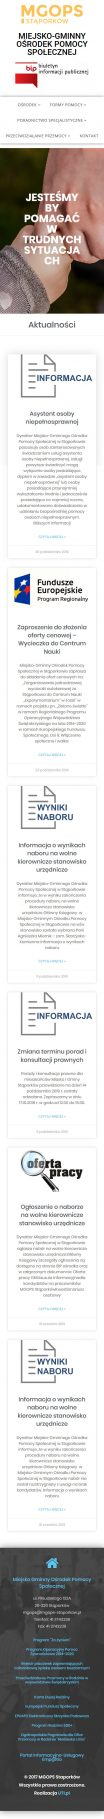 Mgops Staporkow.pl 035